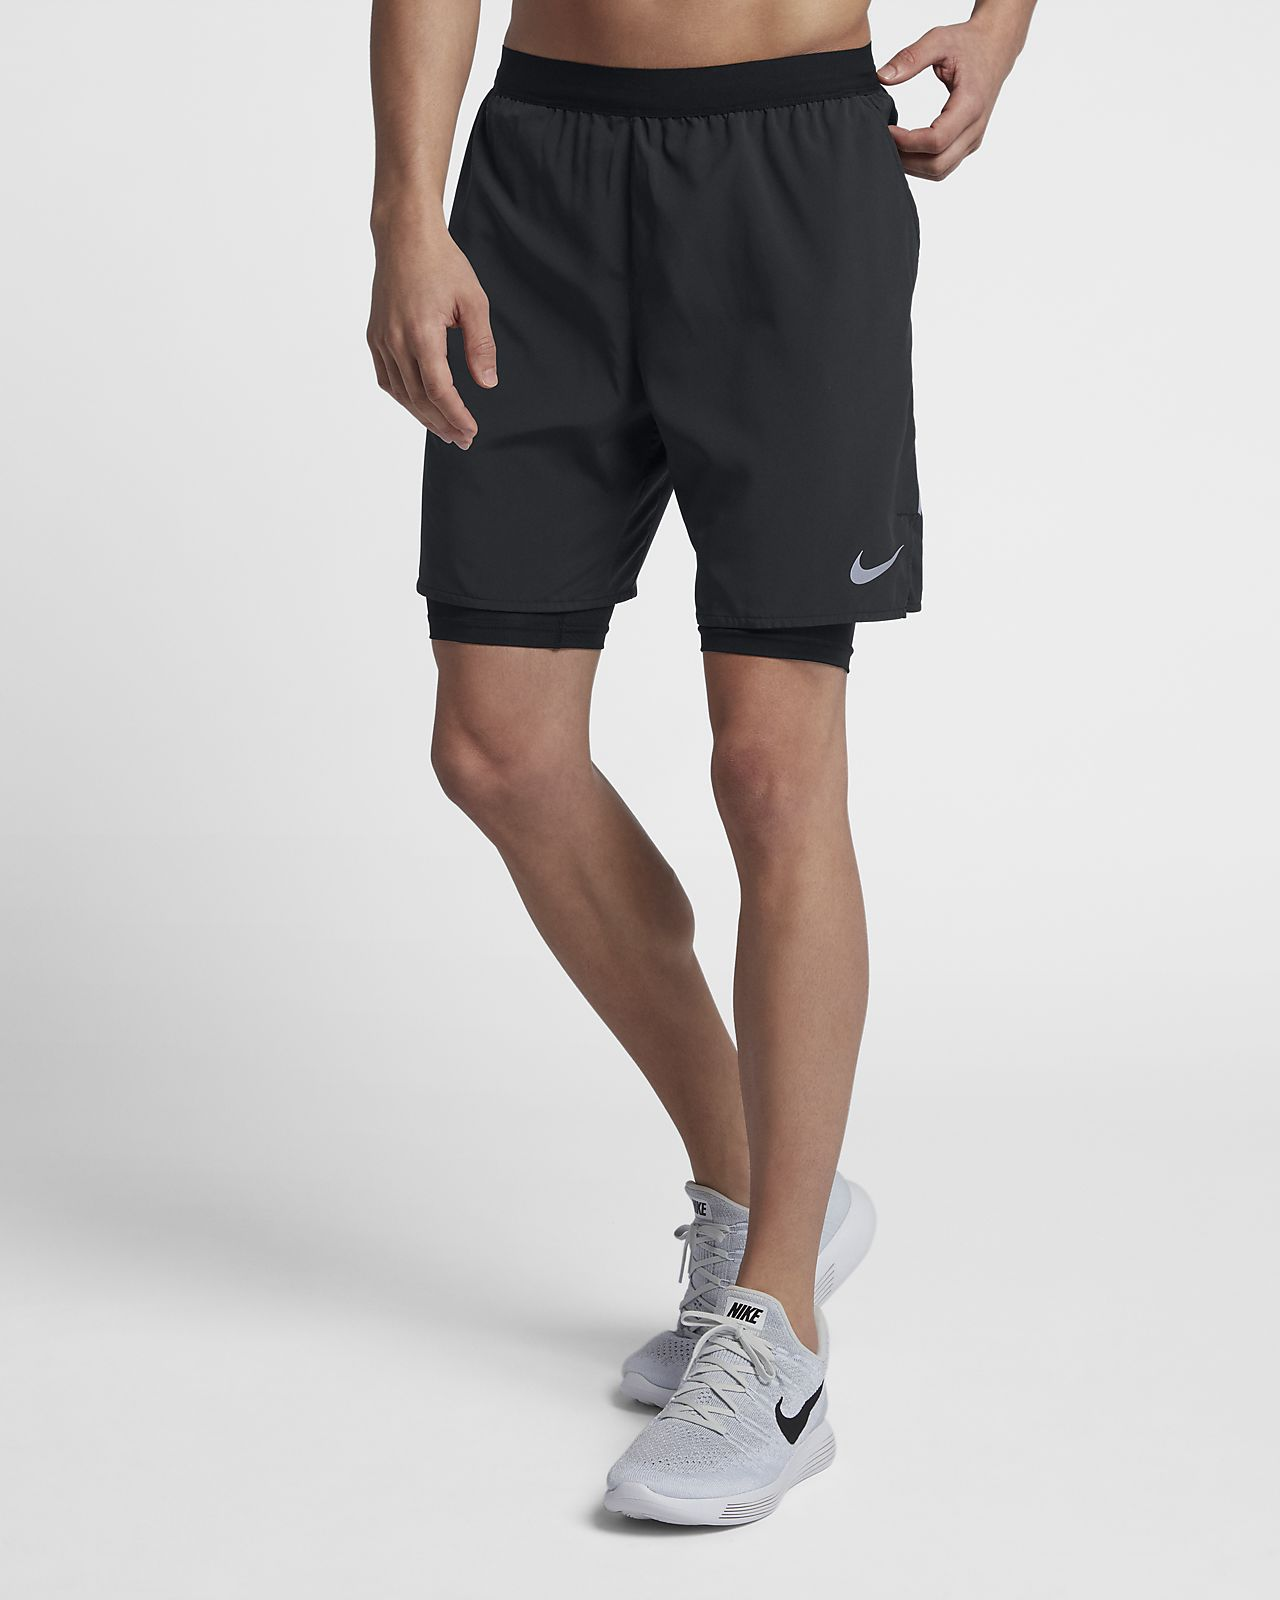 Nike Distance 2-in-1 Men's 7